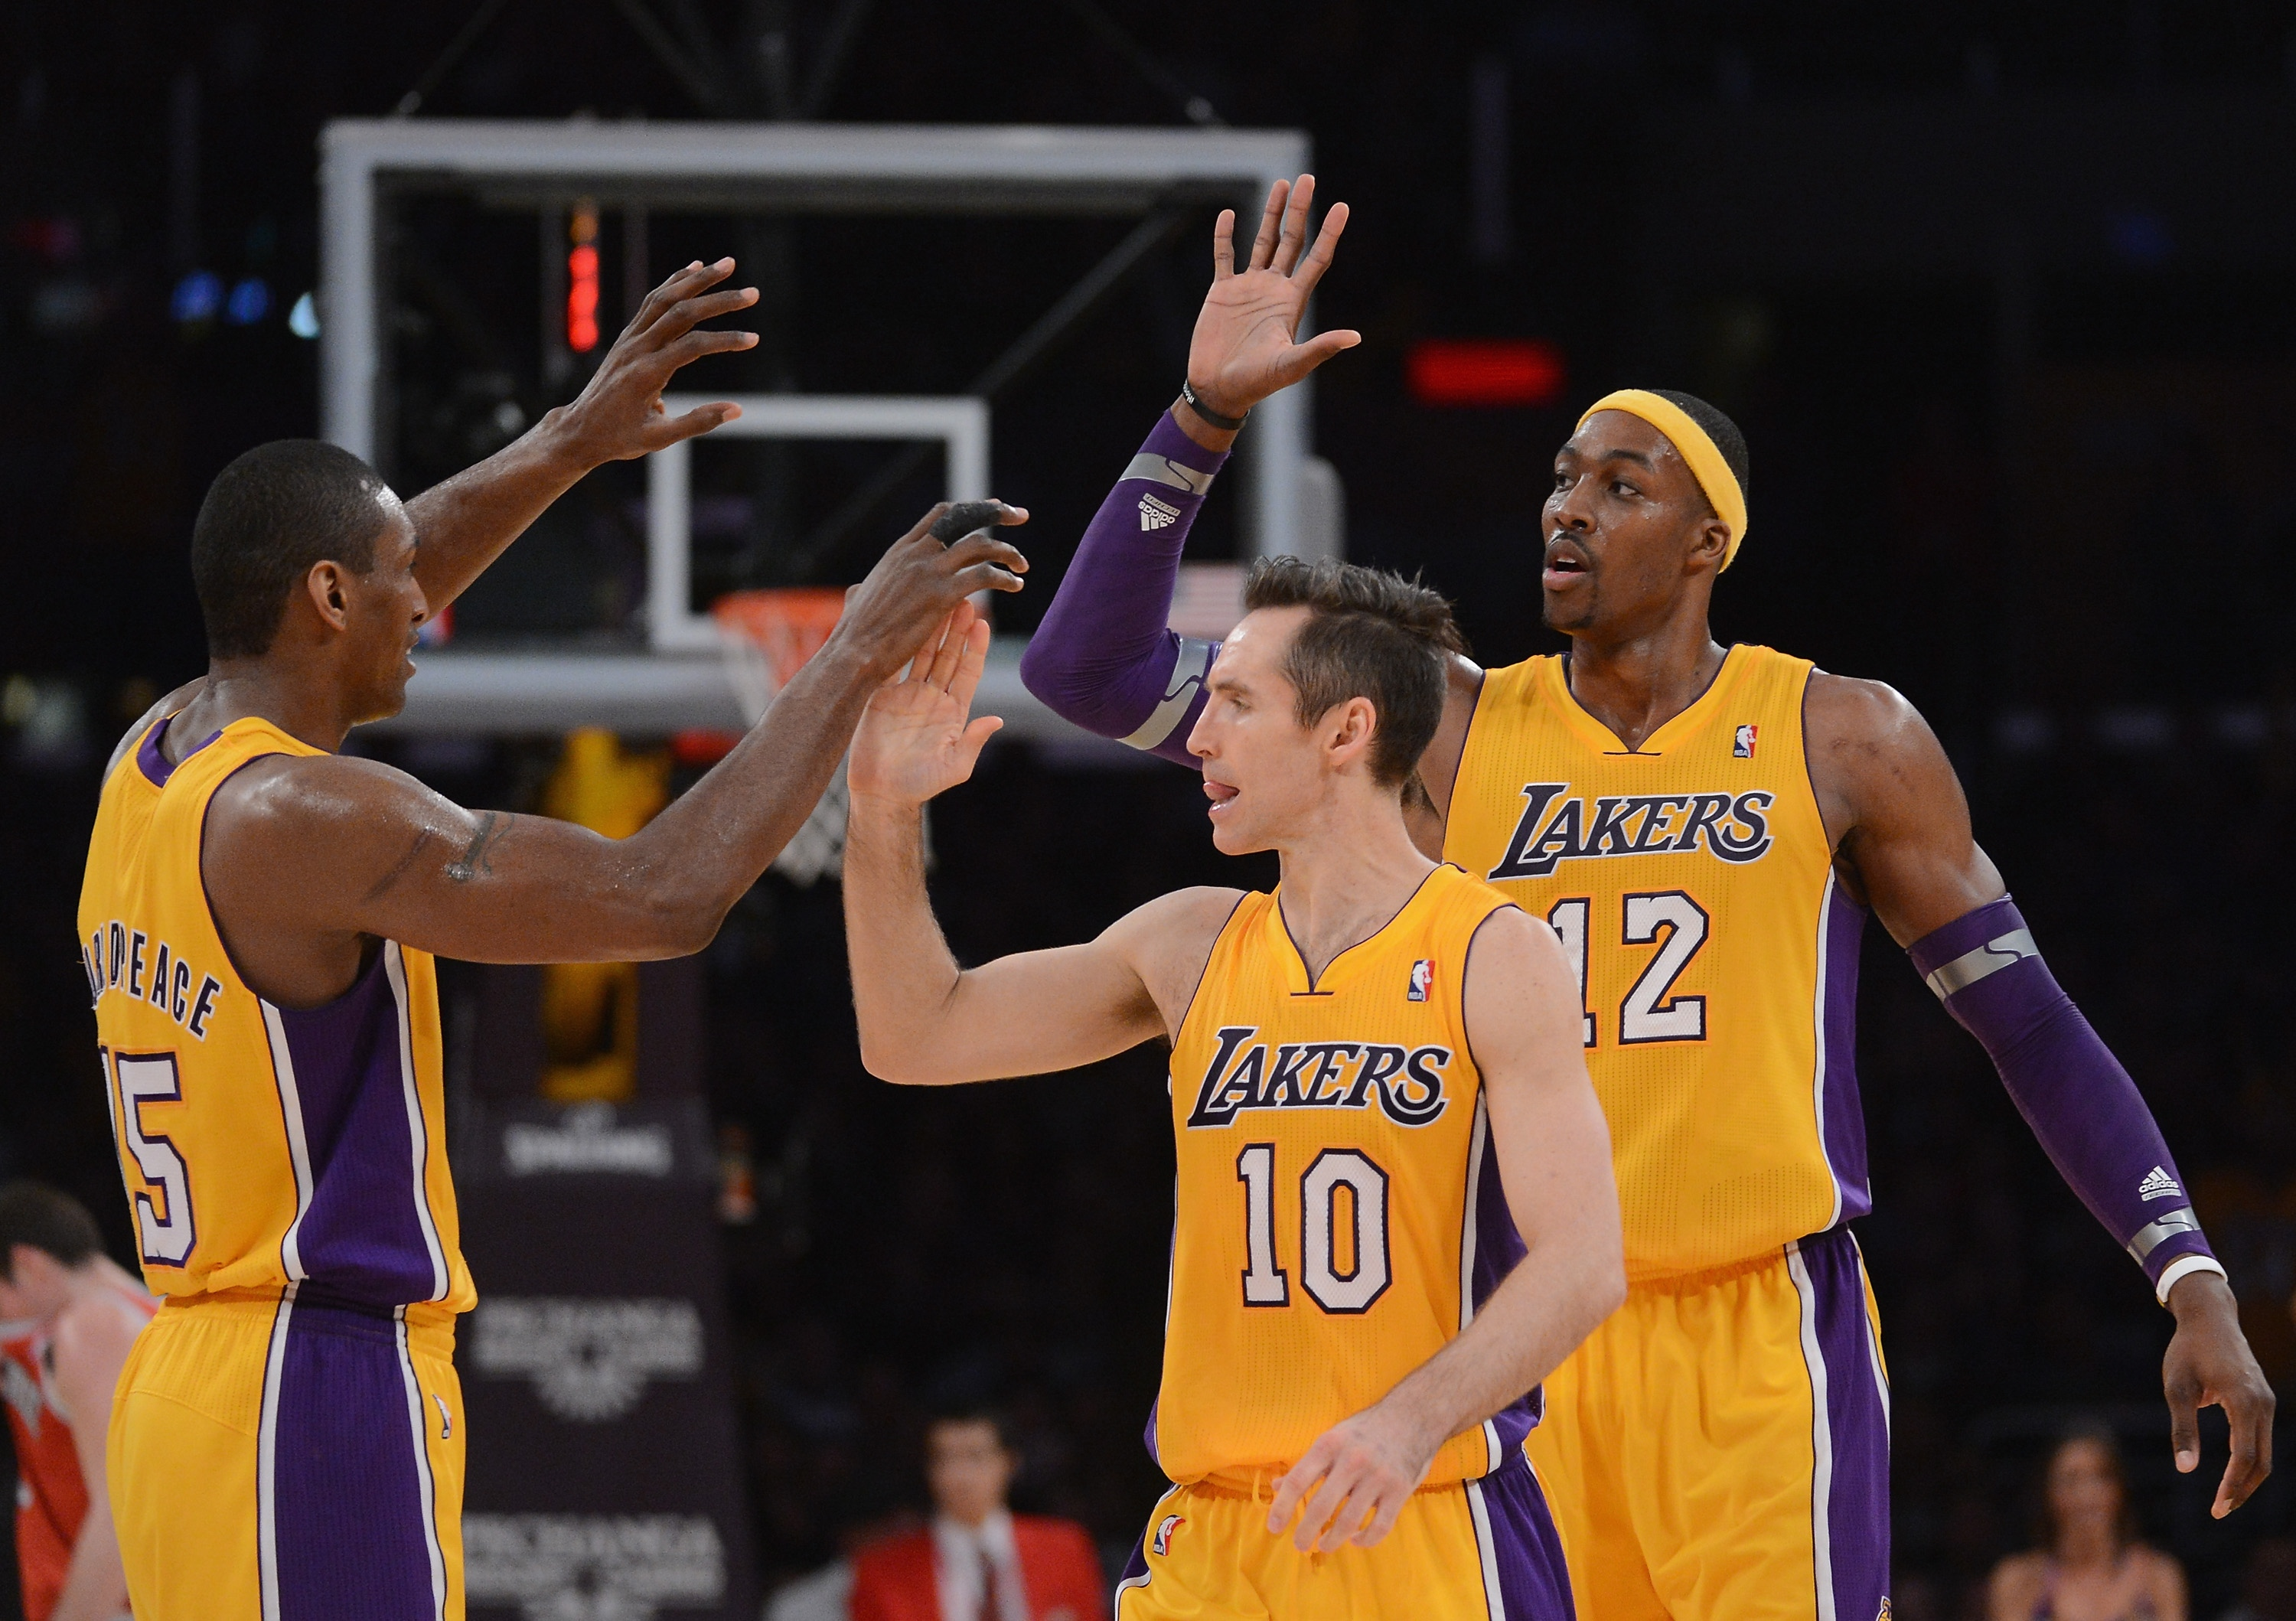 Fotos do time atual do Los Angeles Lakers